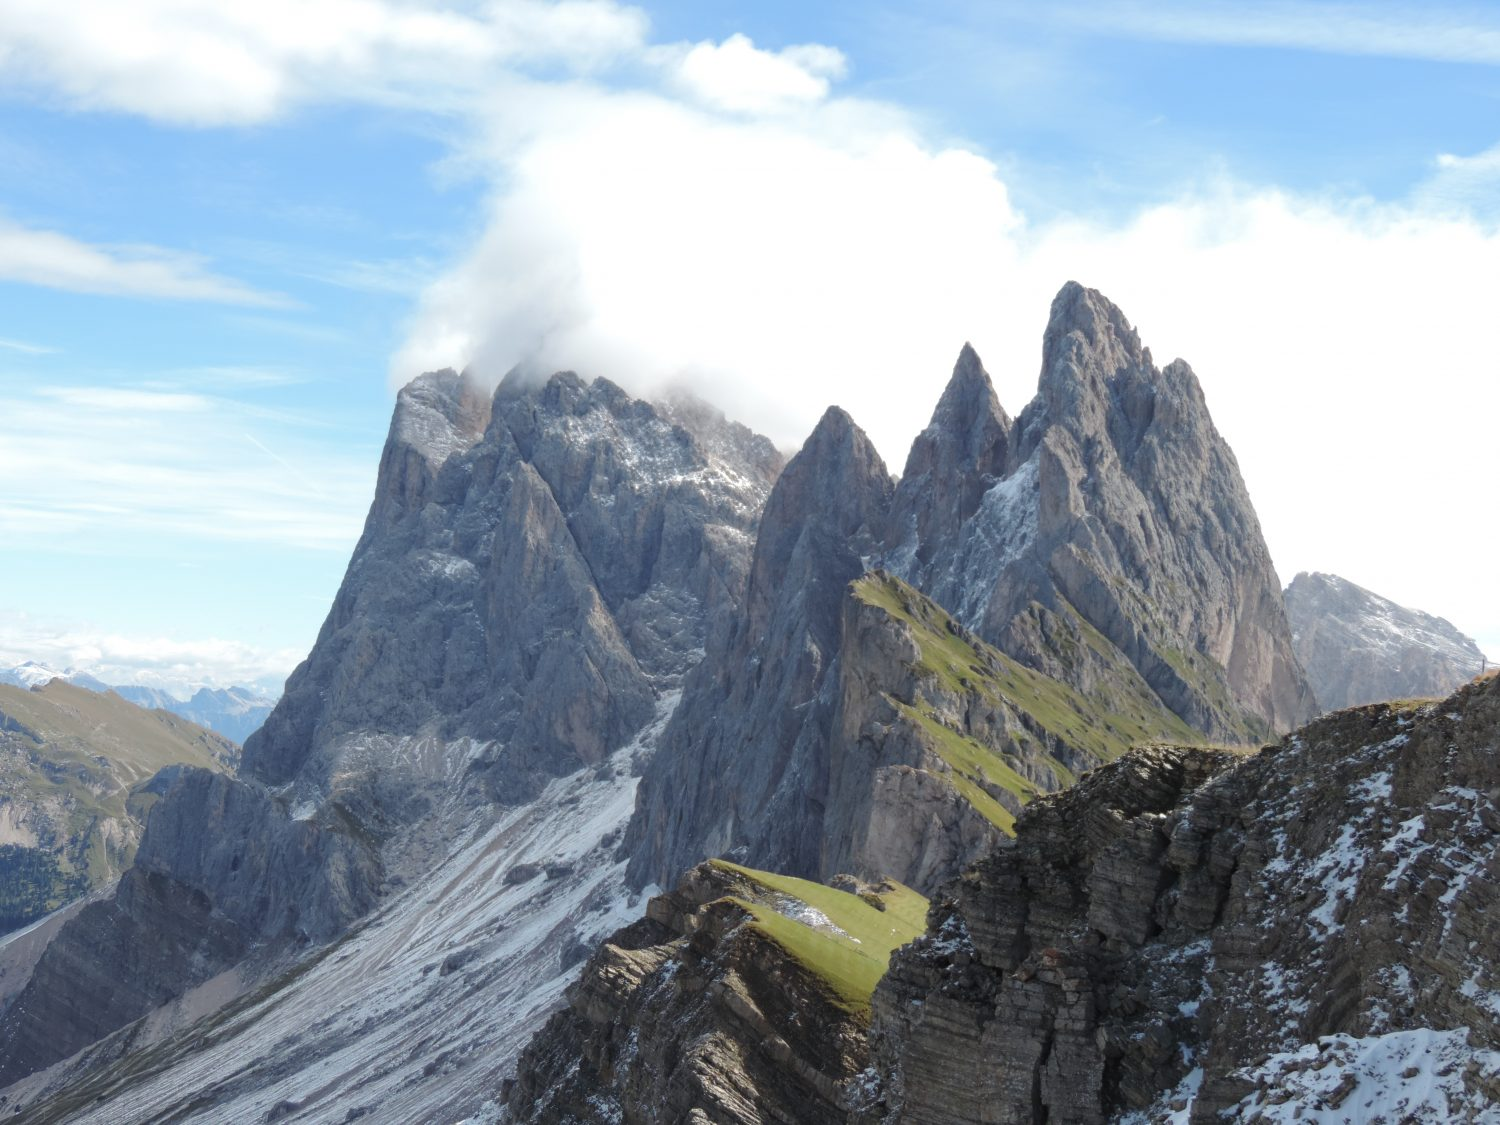 image: looking to the Puez Odle from Seceda